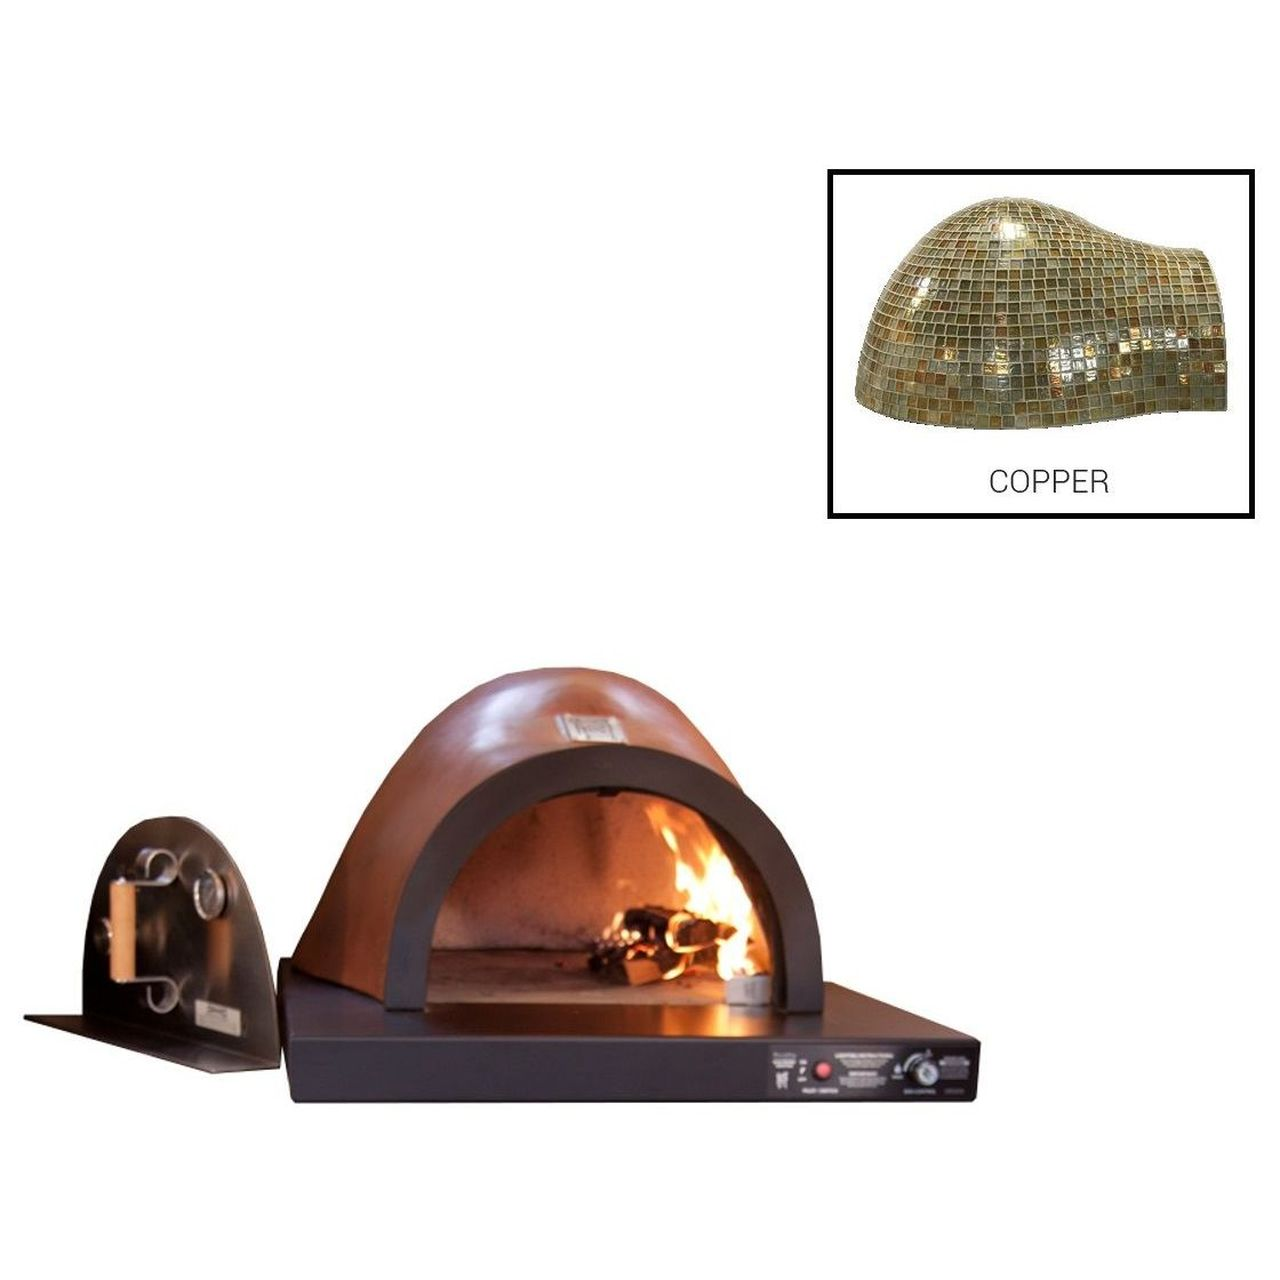 HPC Villa Hybrid Gas/Wood Oven With EI in Copper - LP